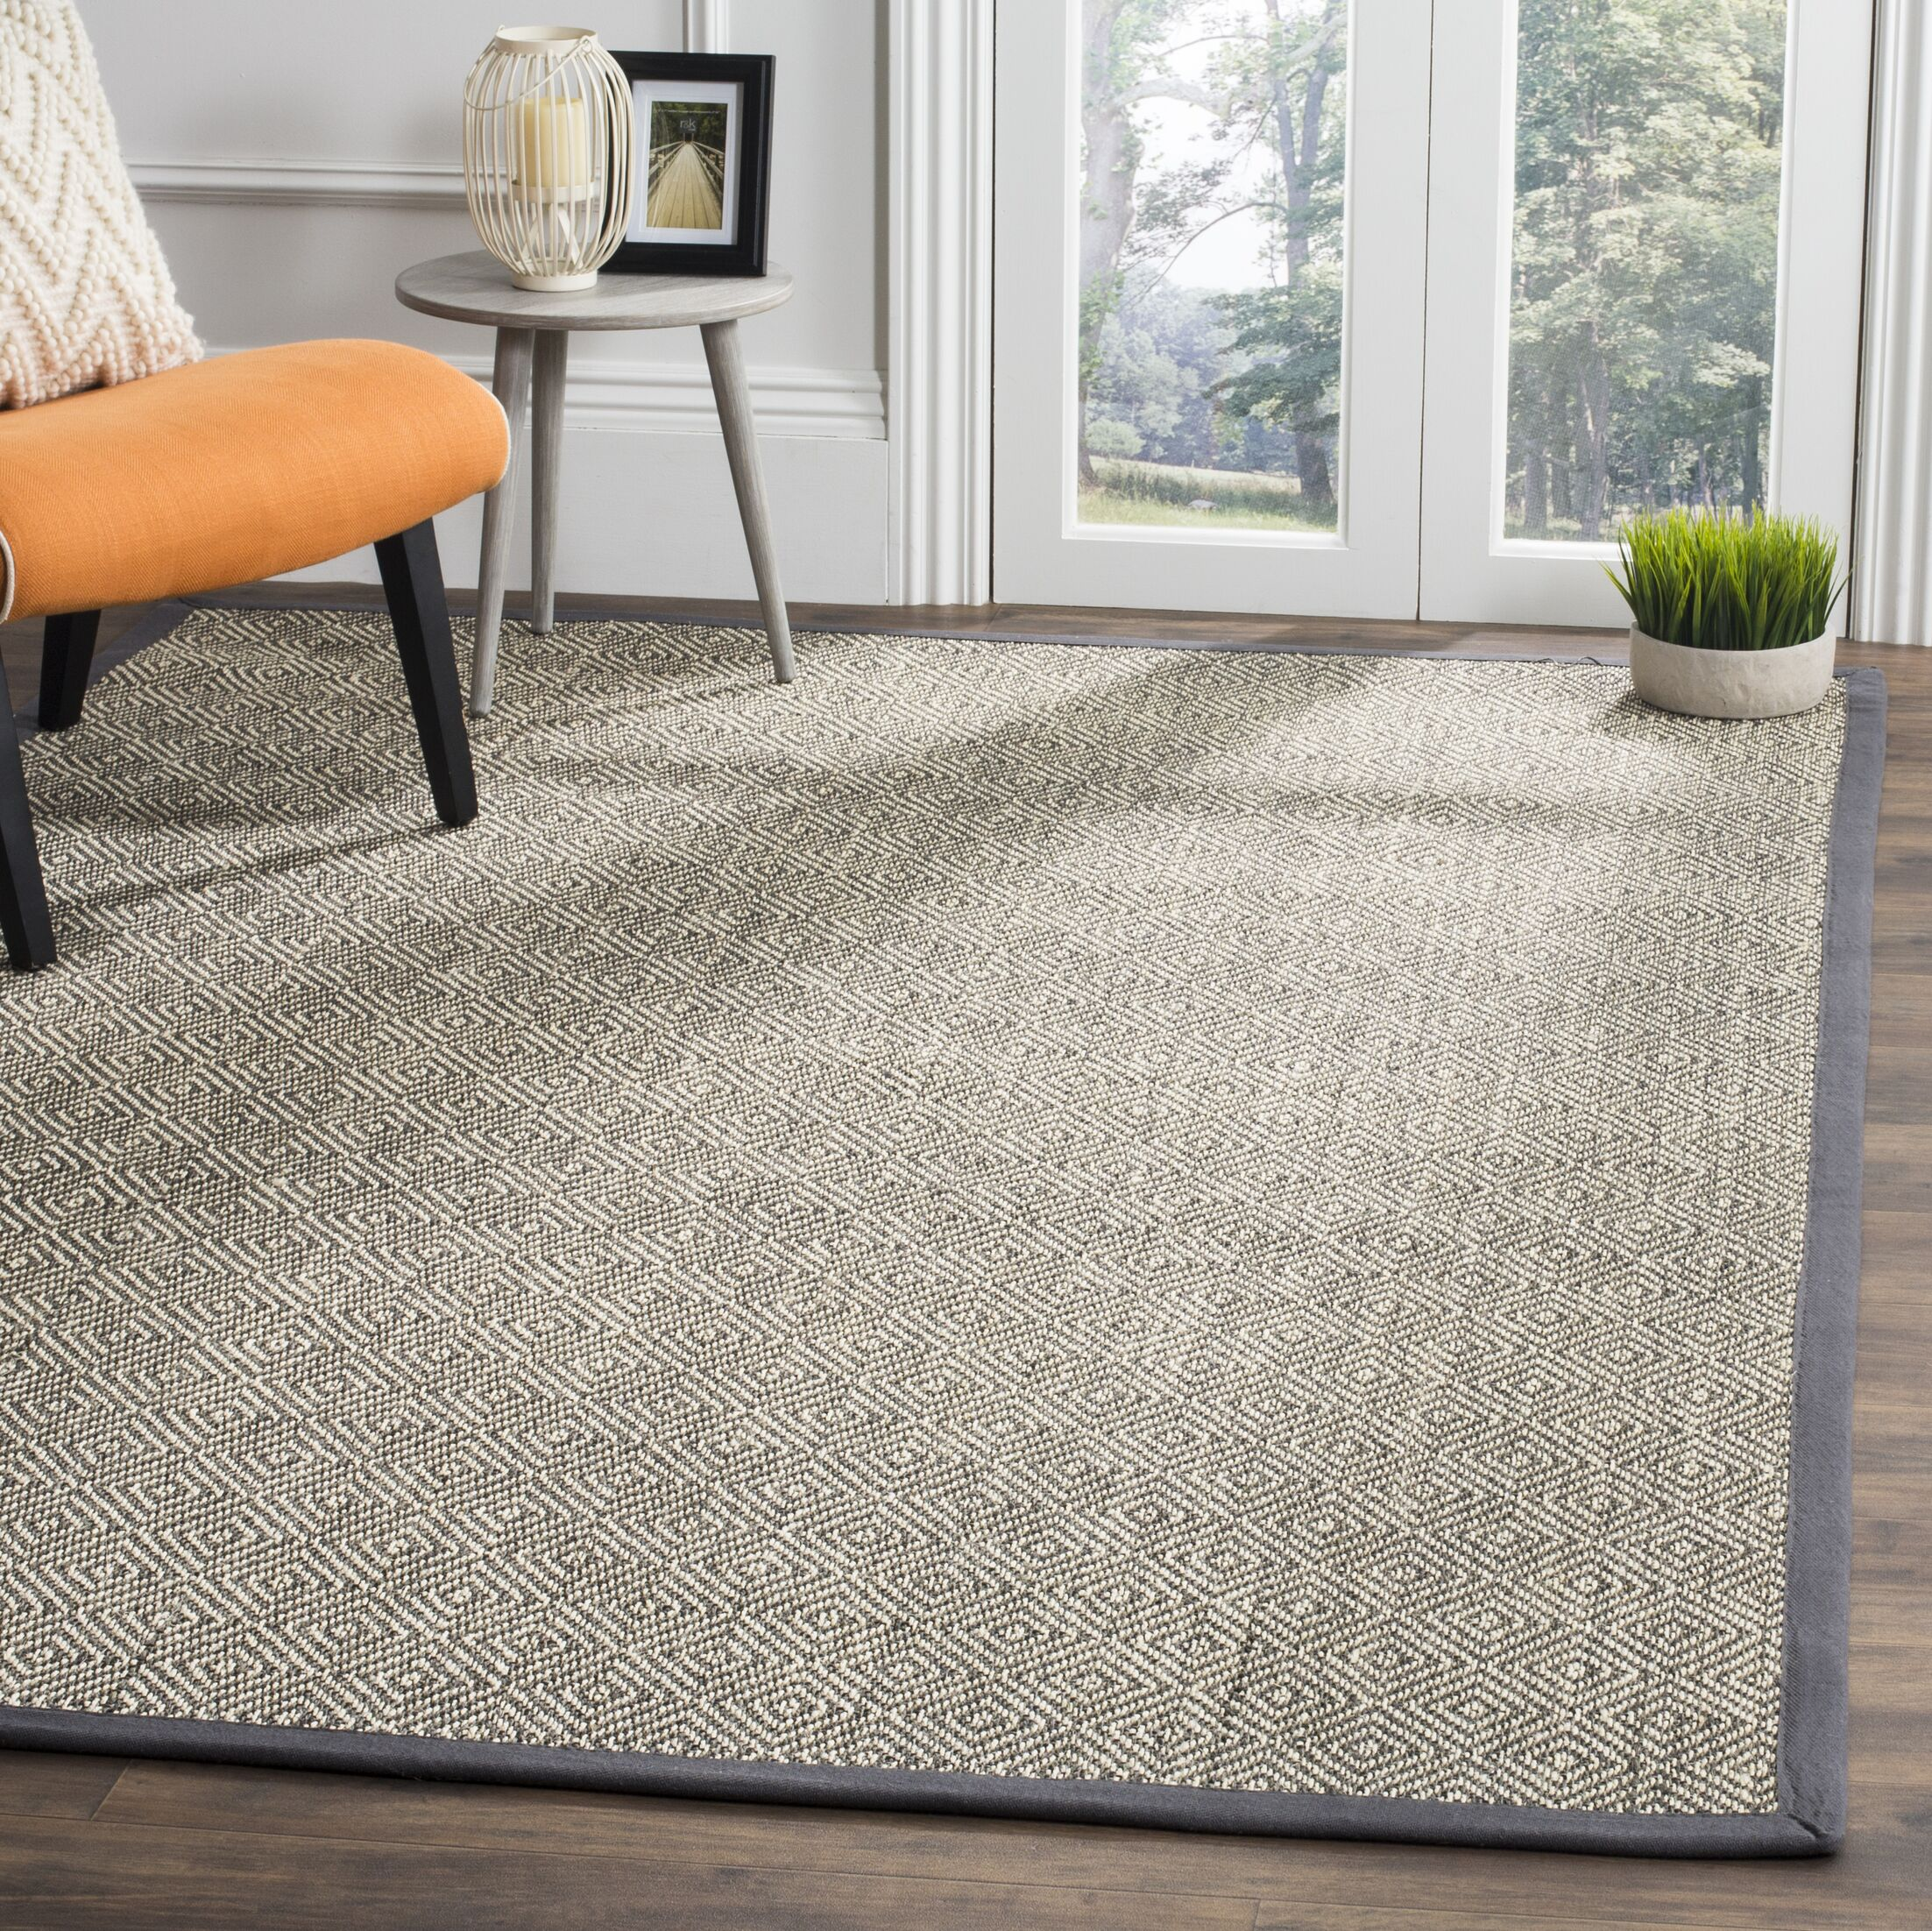 Freels Natural/Gray Area Rug Rug Size: Square 6' x 6'